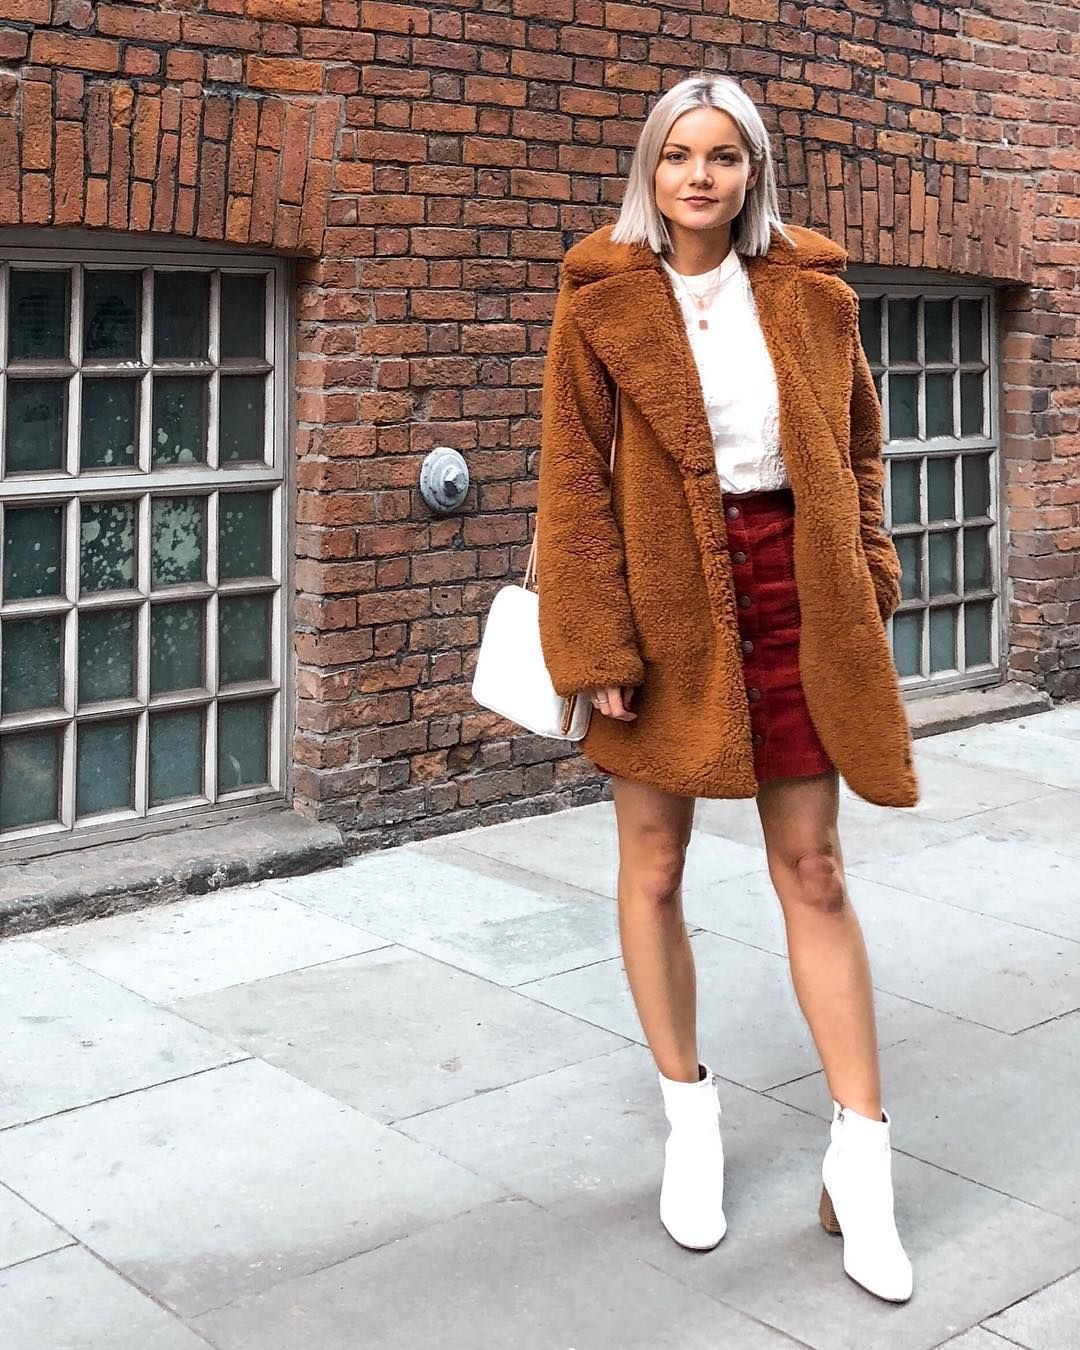 """a464e339adaf Nina Lea Caine on Instagram: """"I am in LOVE with this teddy coat; the ..."""